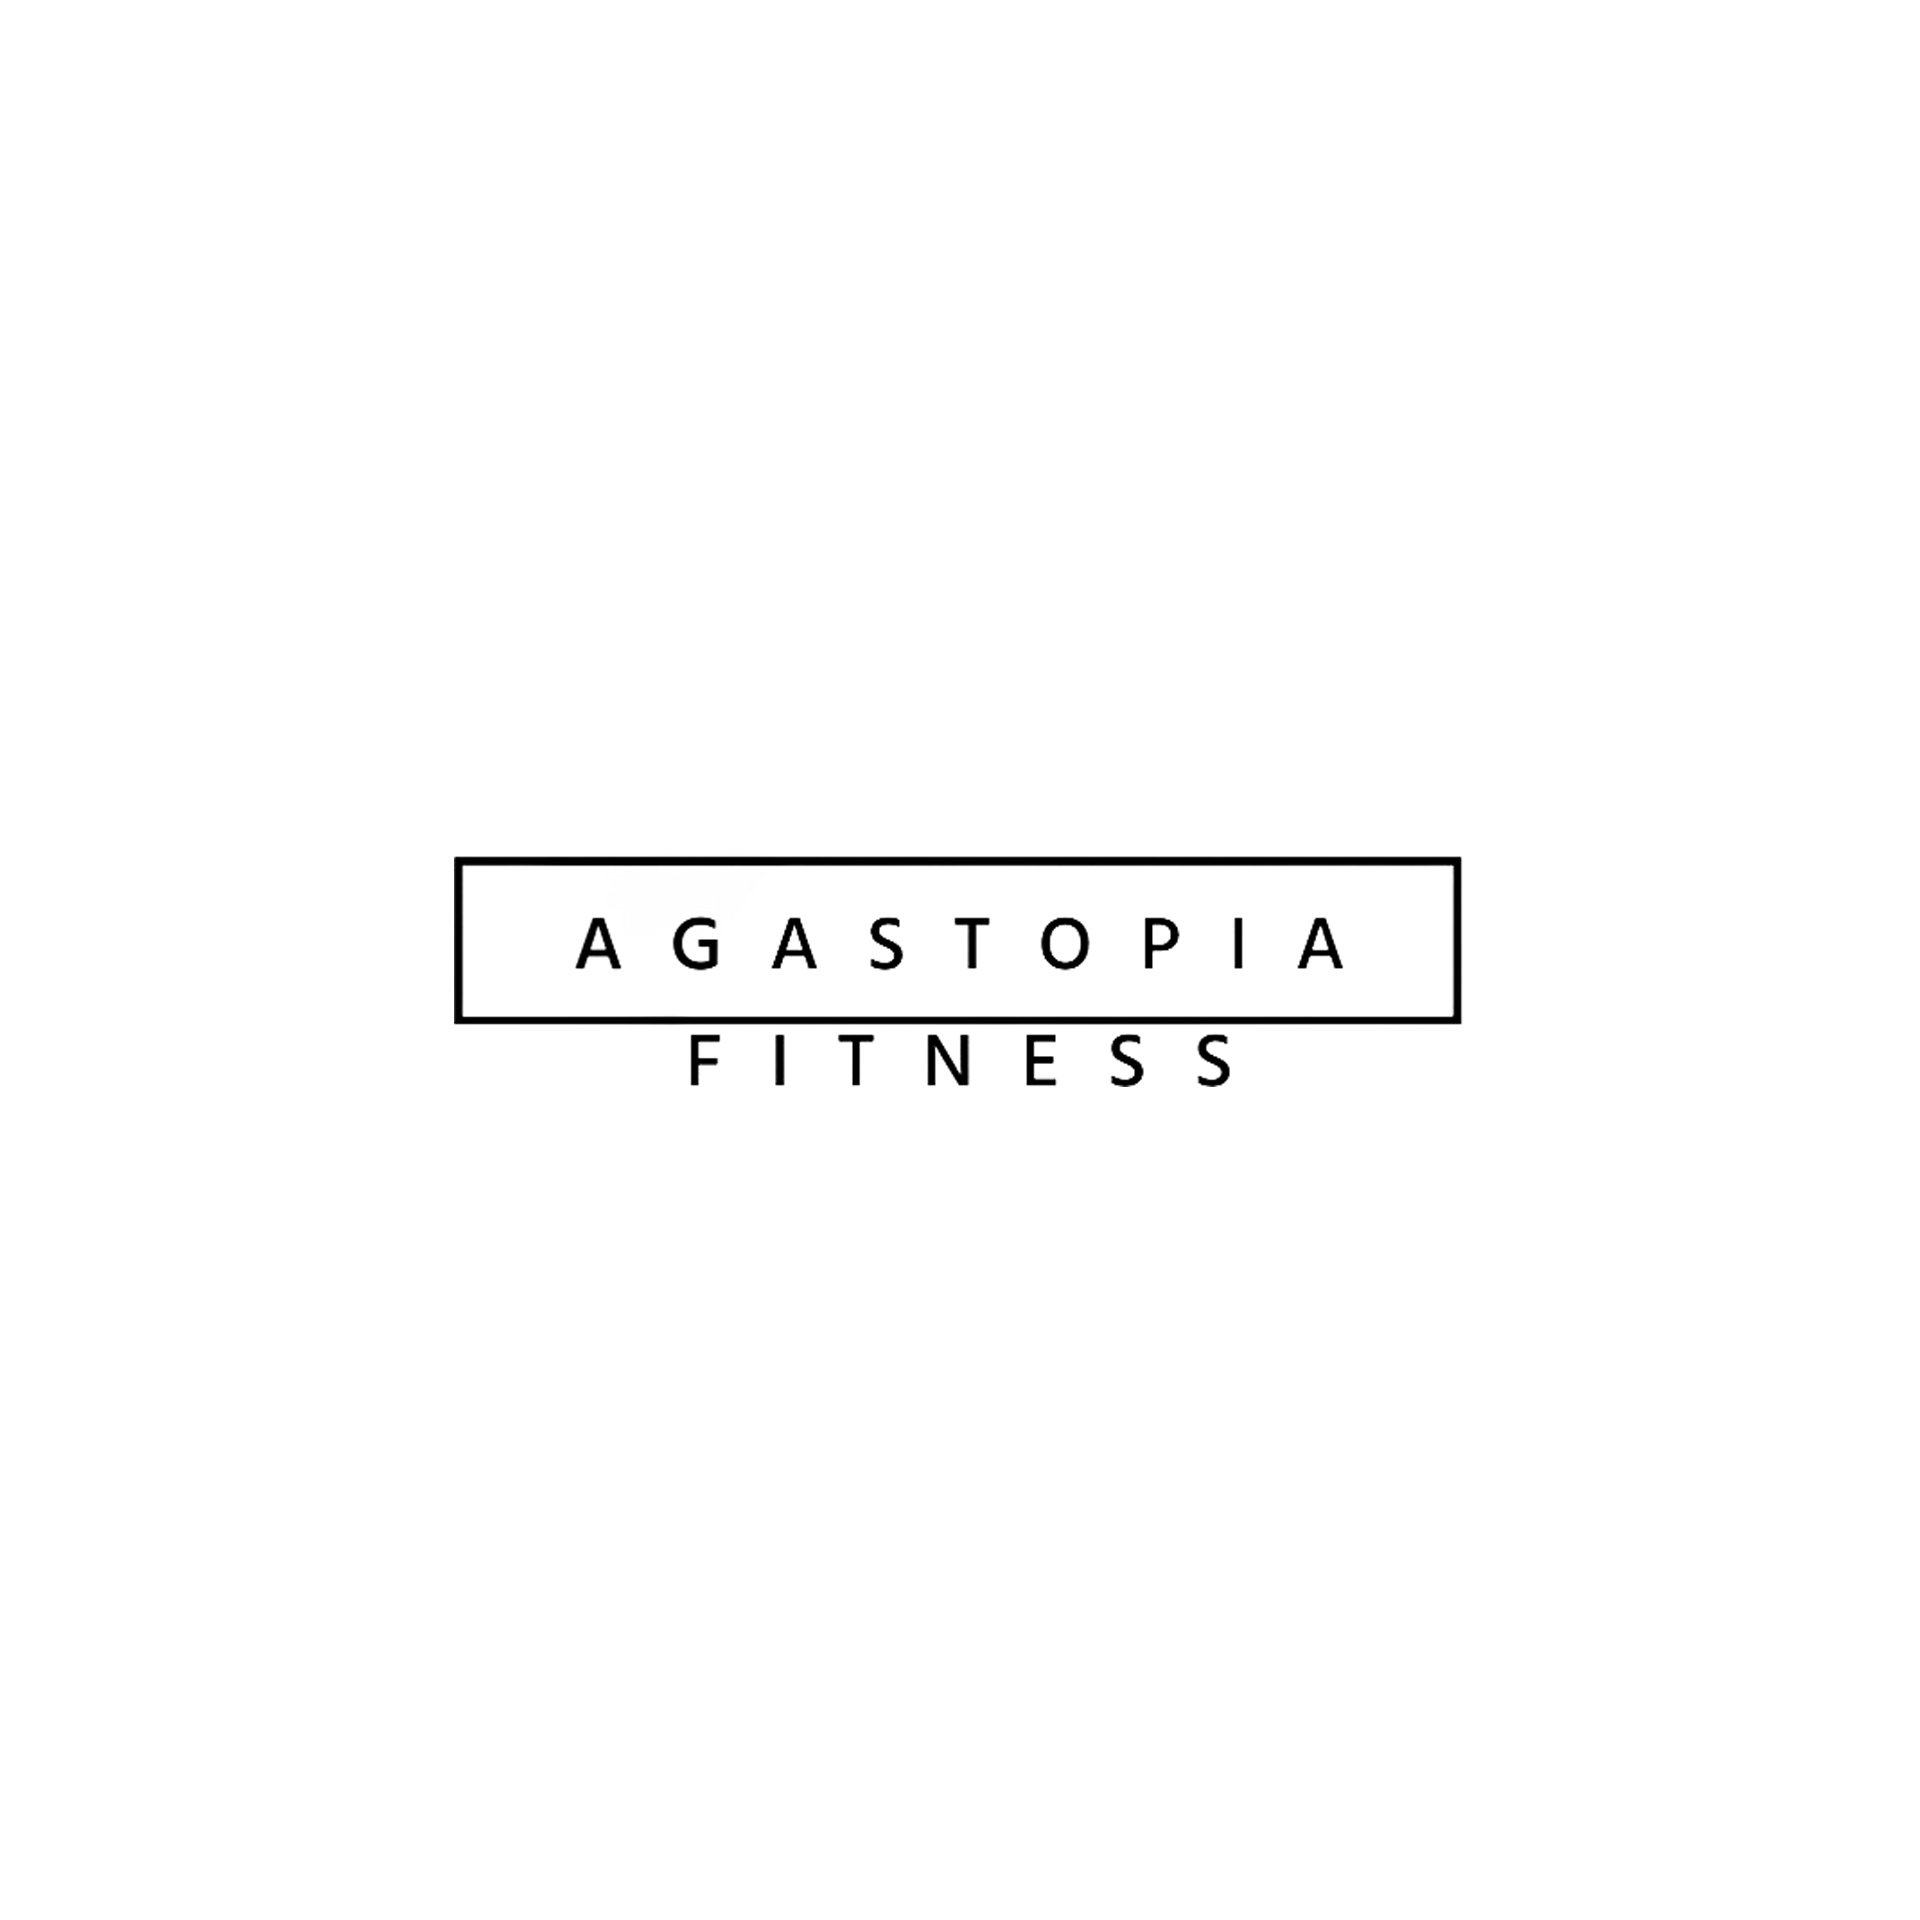 Agastopia Fitness Digital Marketing Company Auckland